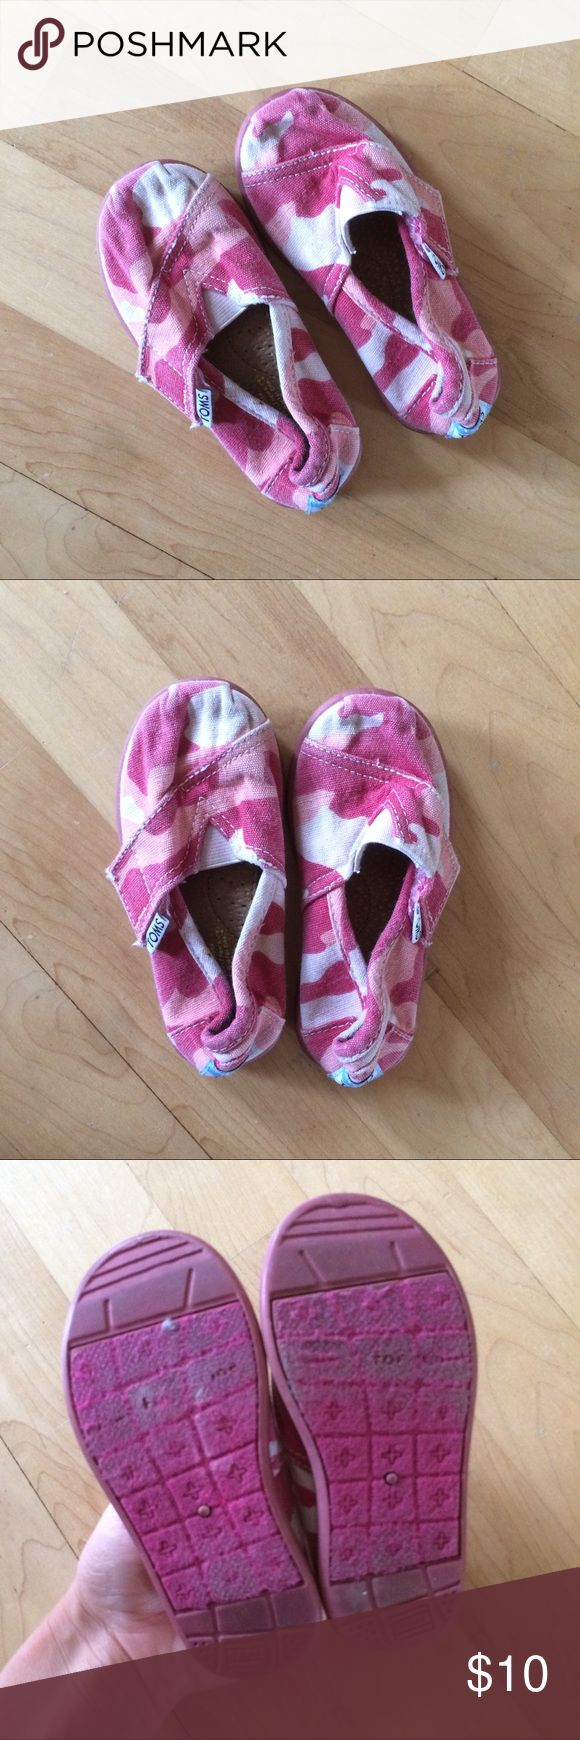 Pink camouflage Toms toddler size 6 Adorable little pink camo toms for your little girl! Sz 6 toddler. They have faded some, but otherwise GUC. They are well loved with plenty of life left. Velcro closure with elastic to allow for easy slip on. Pink light pale pink and white camo, with pink soles. Toms Shoes Sneakers